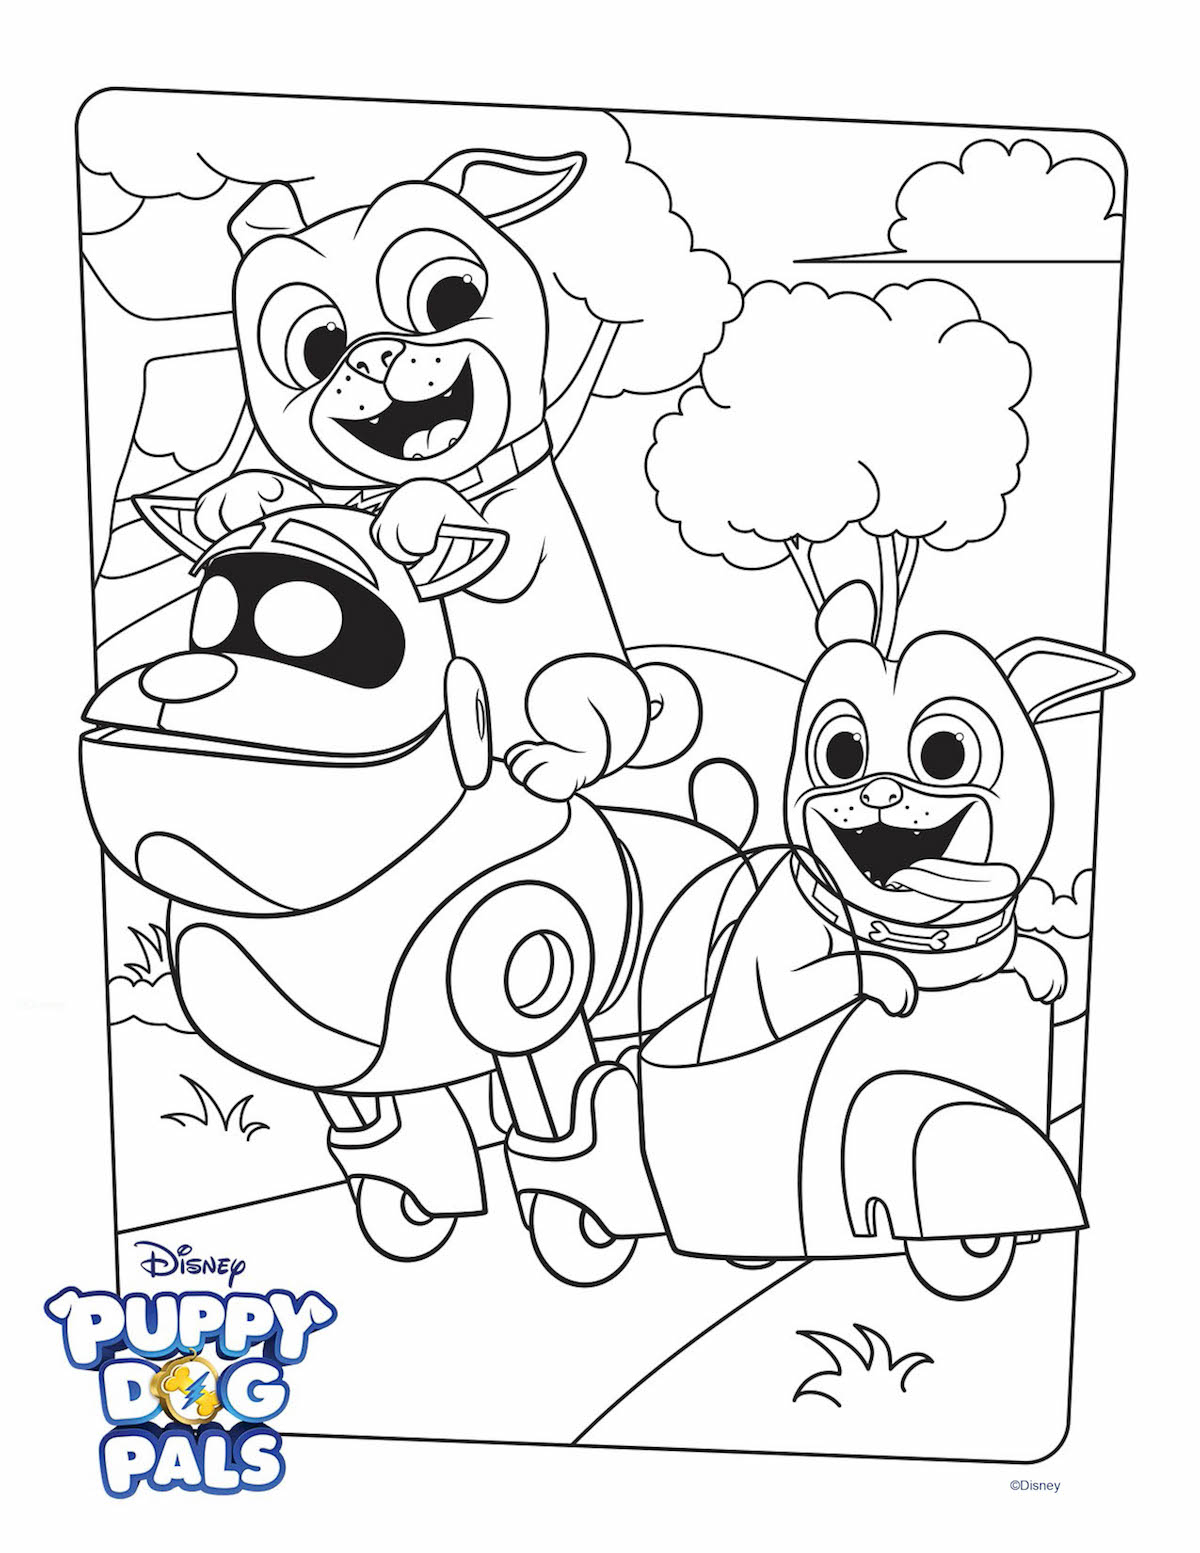 Little Puppy Coloring Pages Puppy Dog Pals Coloring Page Activity Disney Family